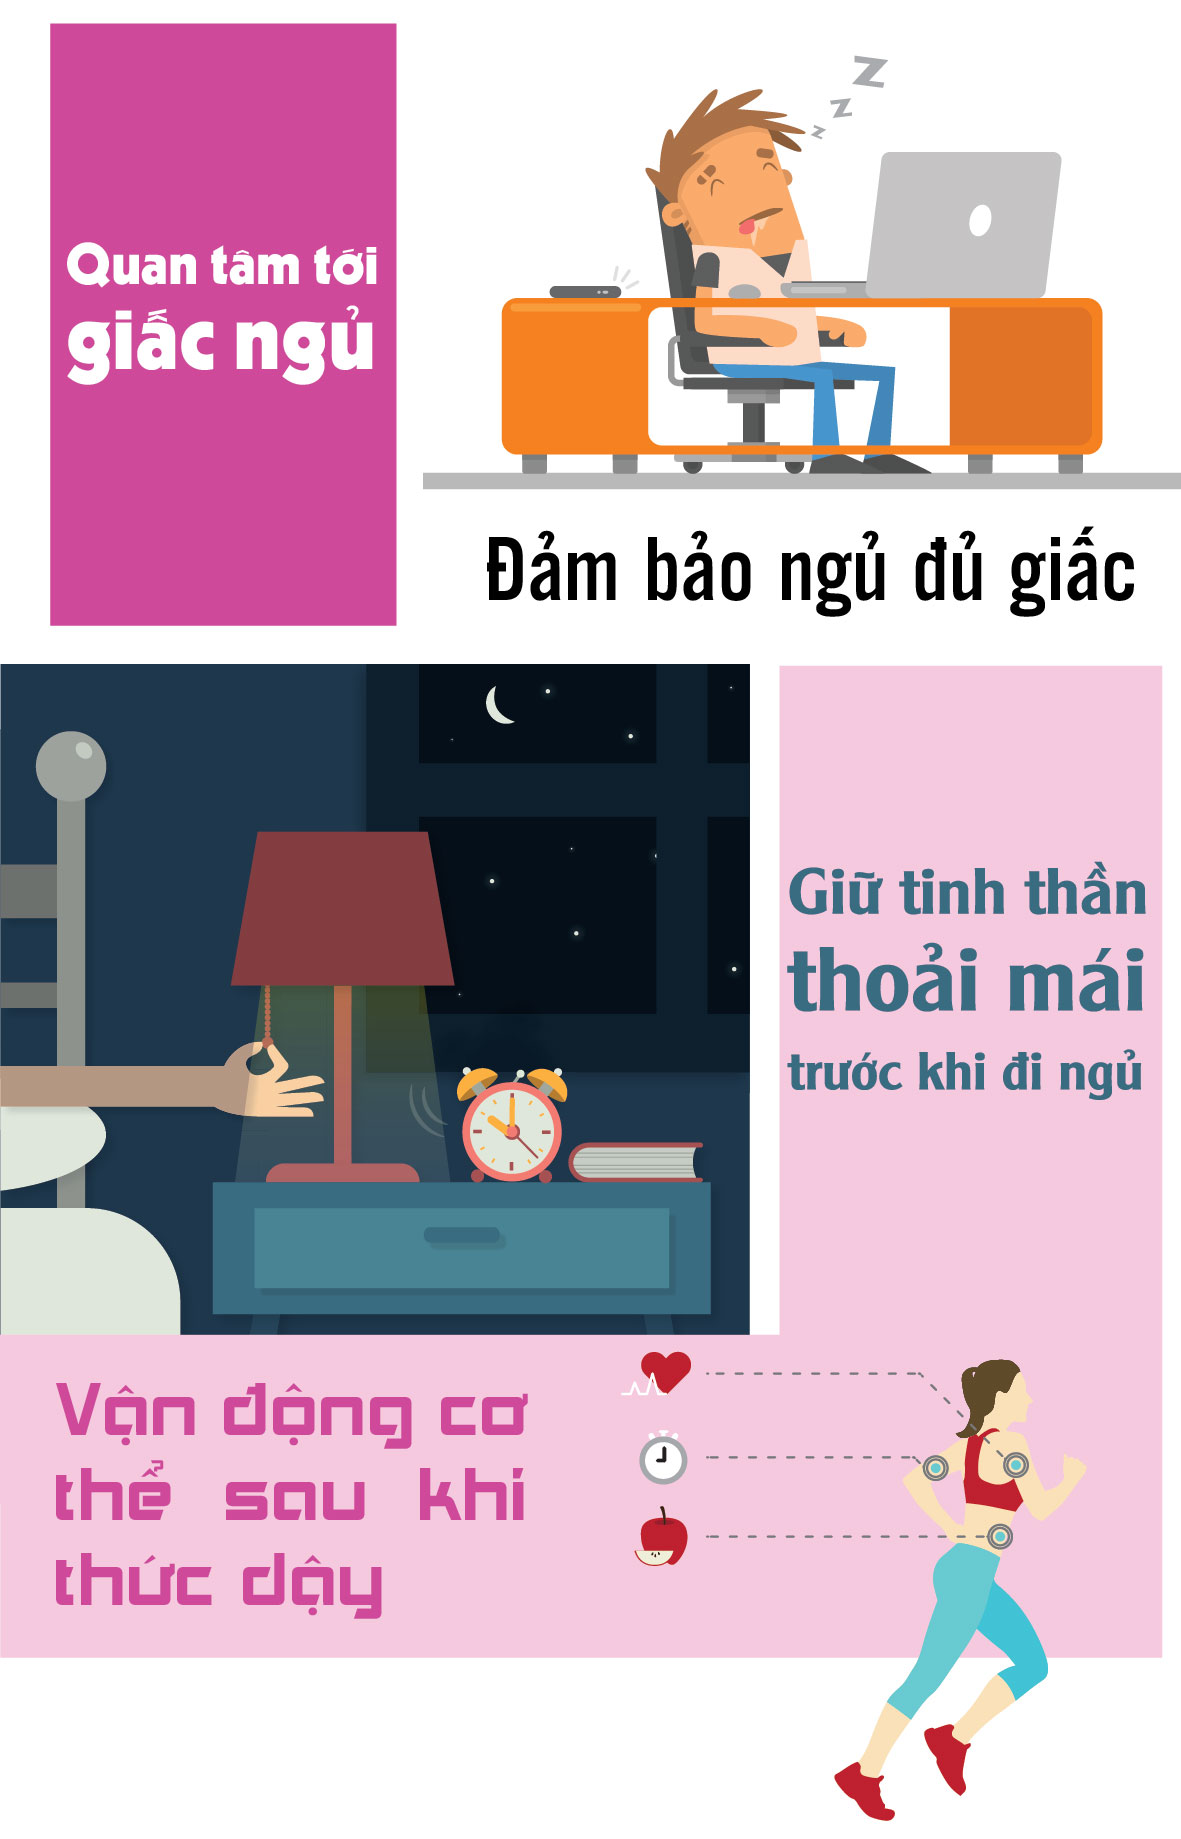 [infographic] bi quyet song khoe cua cu ba cao tuoi nhat the gioi hinh anh 4